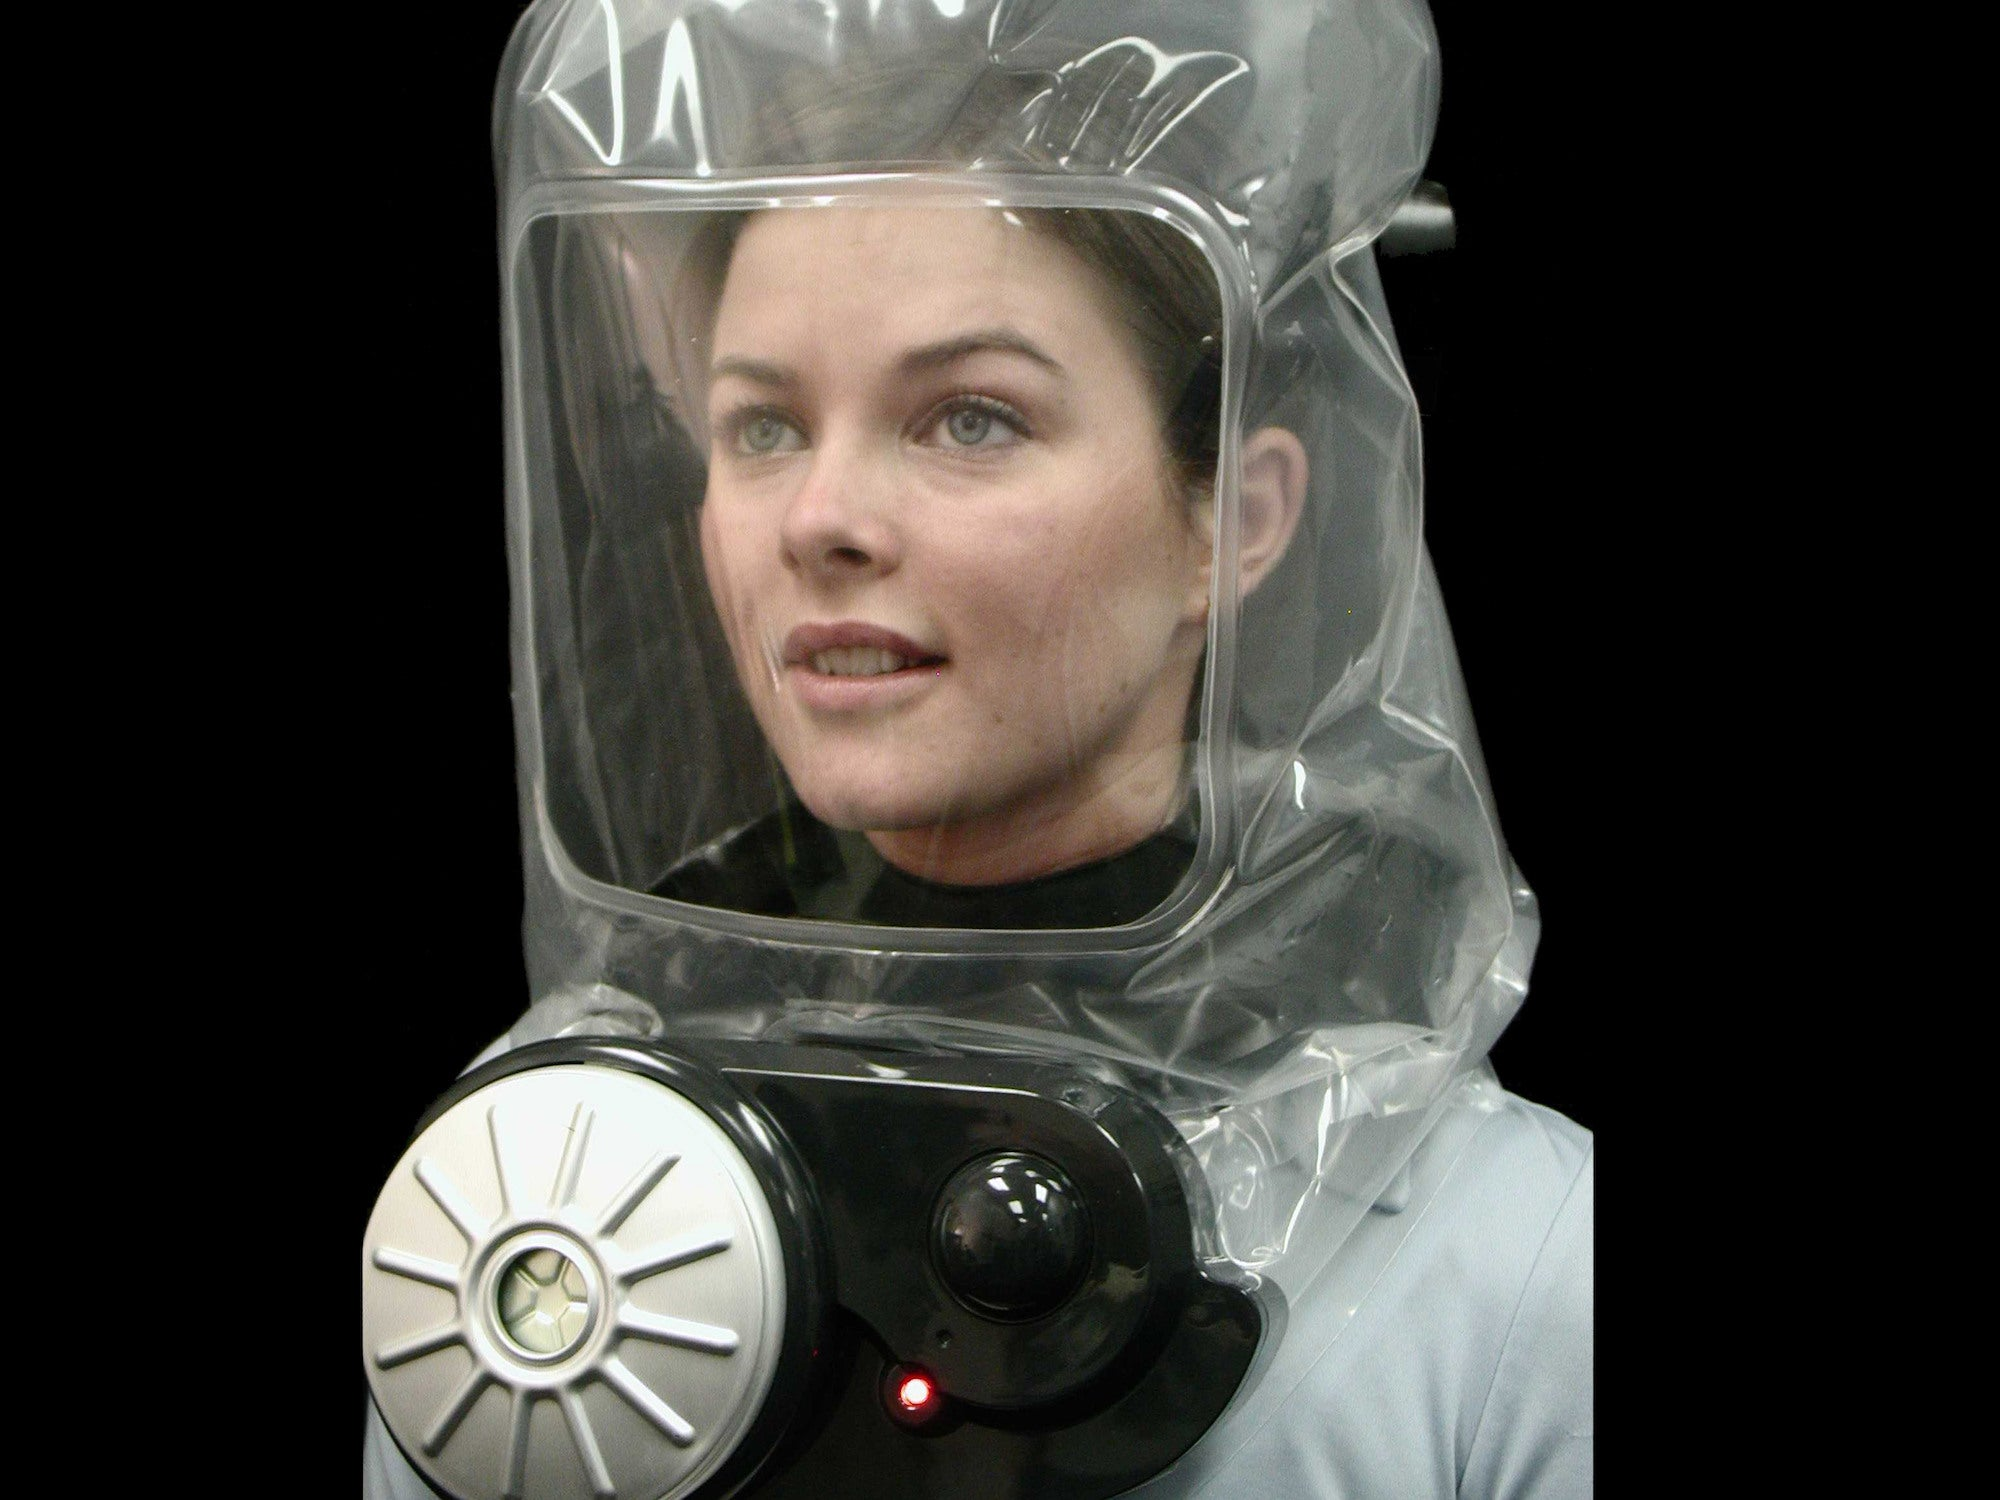 A person wearing an escape hood.